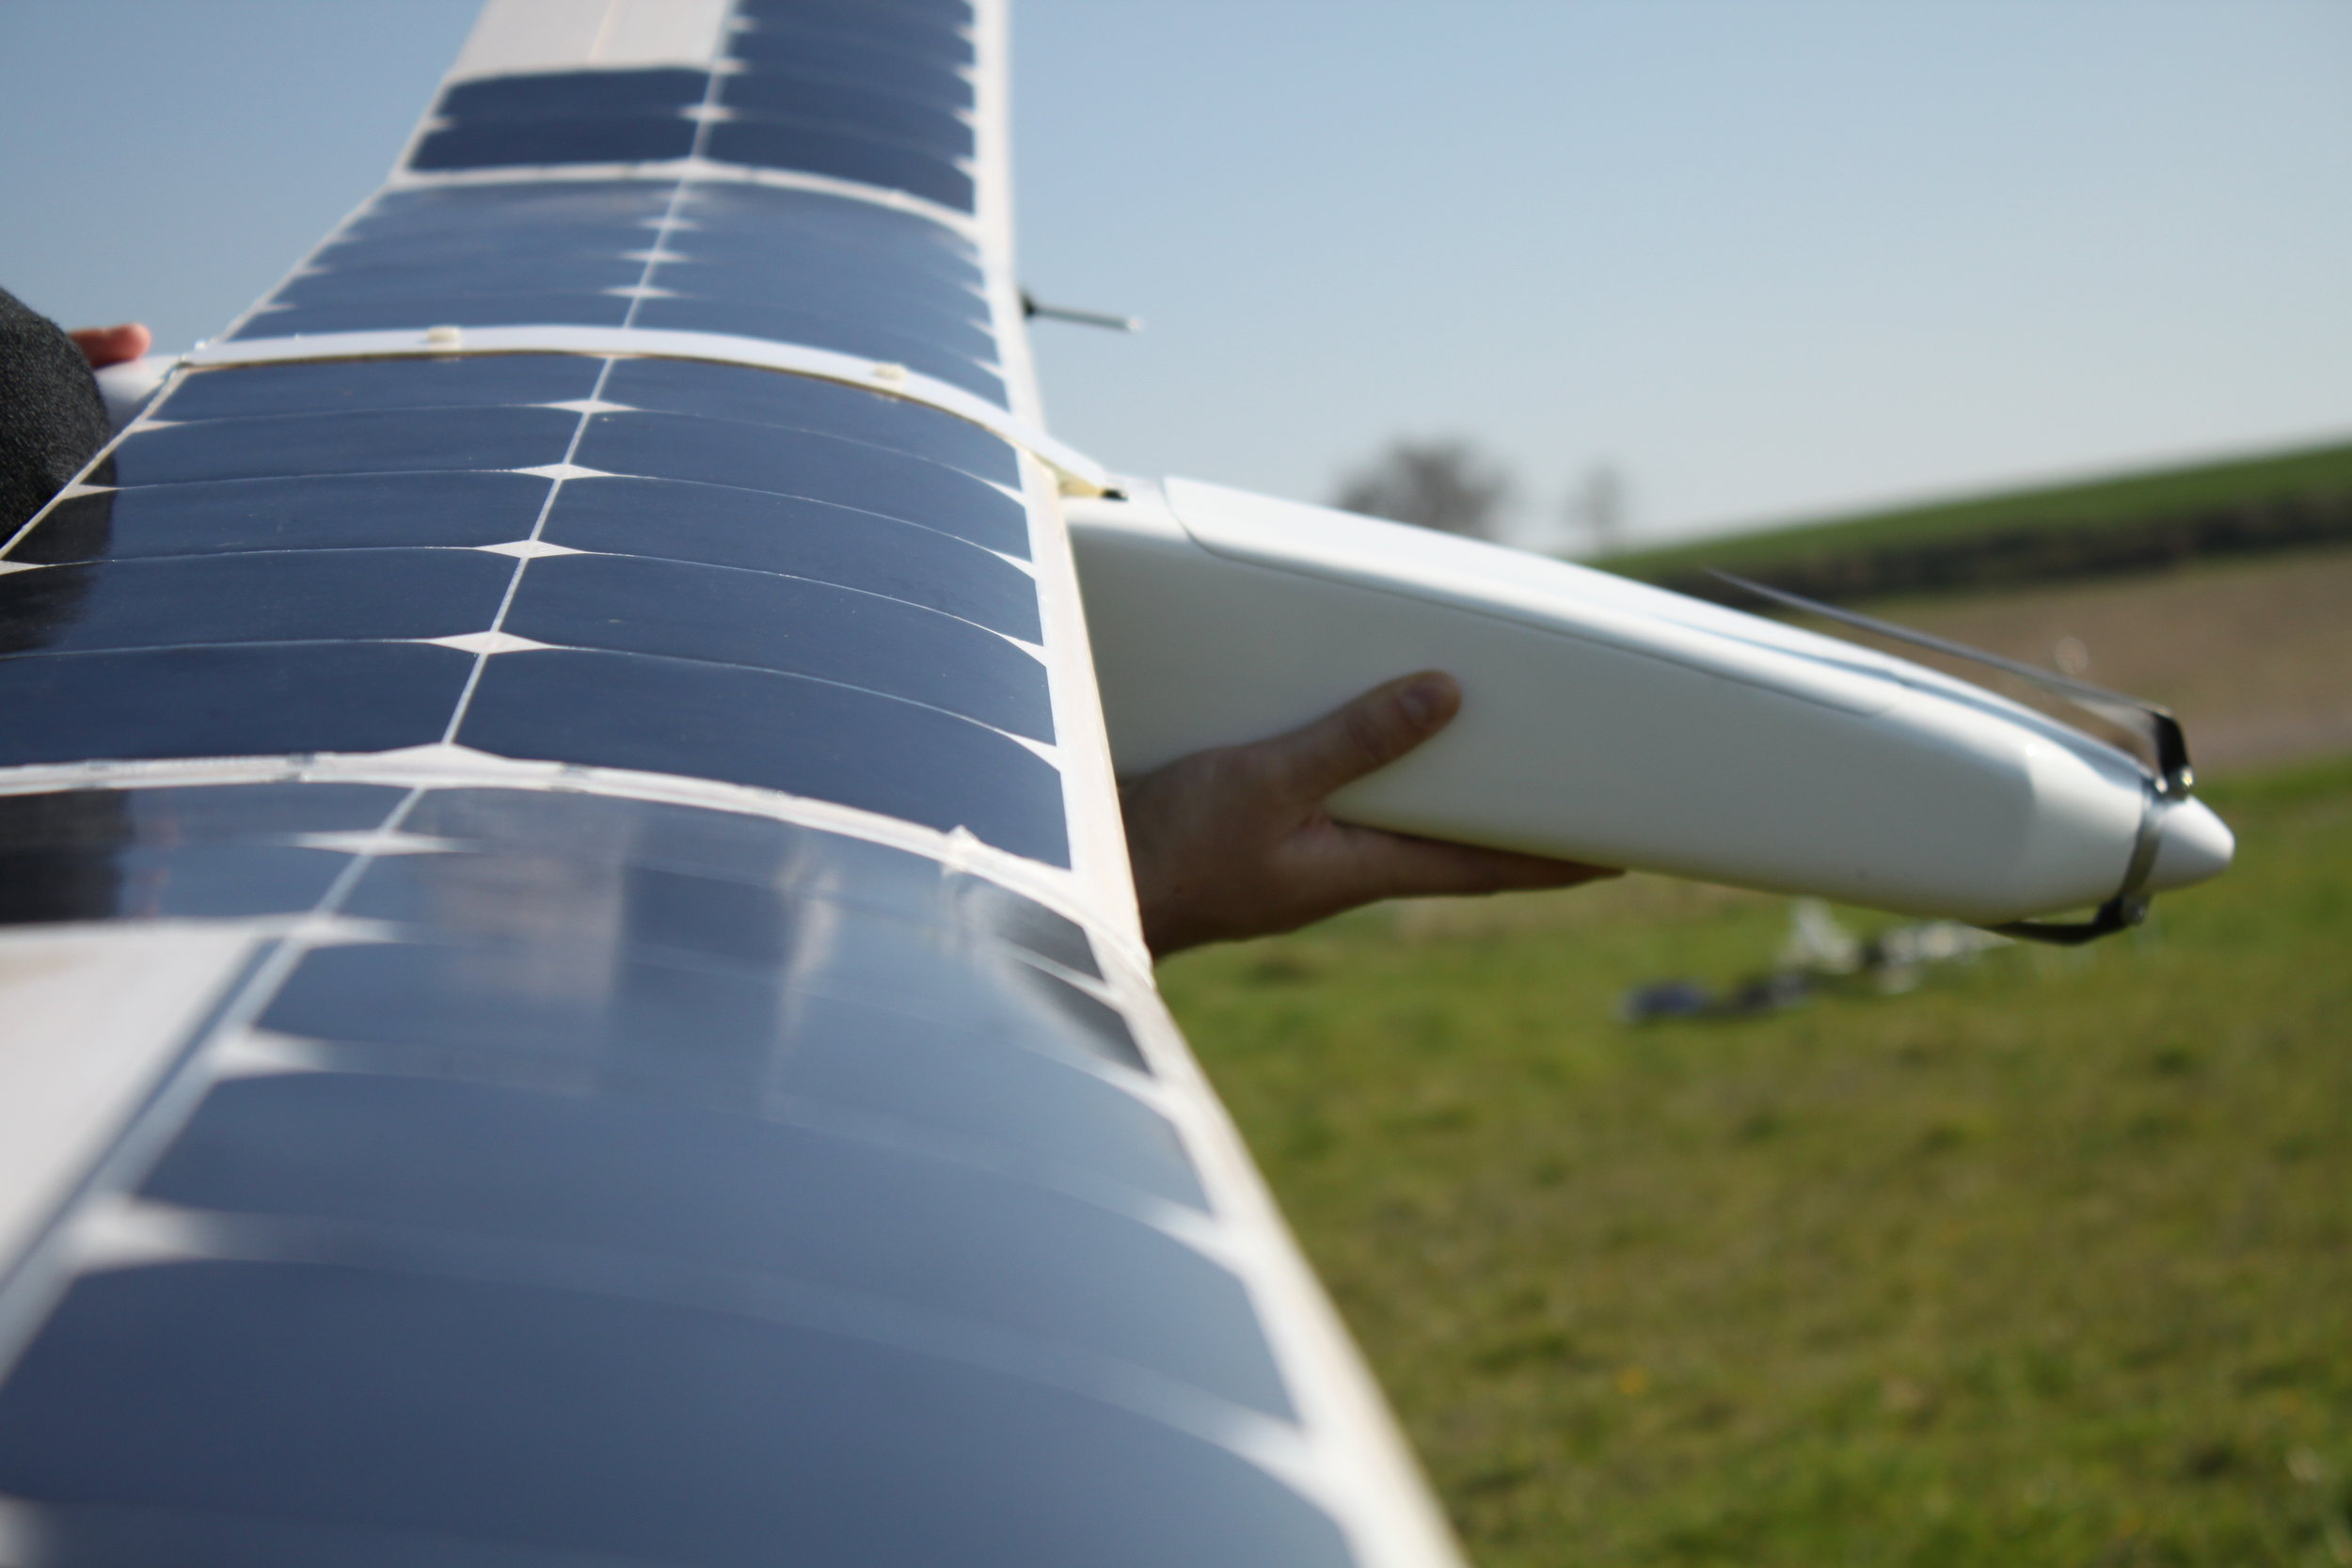 Add tremendous capabilities to your UAVs - Our solar wing is a game changing technology, ready to revolutionize your UAV capabilities and transform the way you collect data. By multiplying by 10 your endurance, this solar wing will allow you to cover hundreds of hectares per flight. It will drastically reduce your mapping time and operational costs.